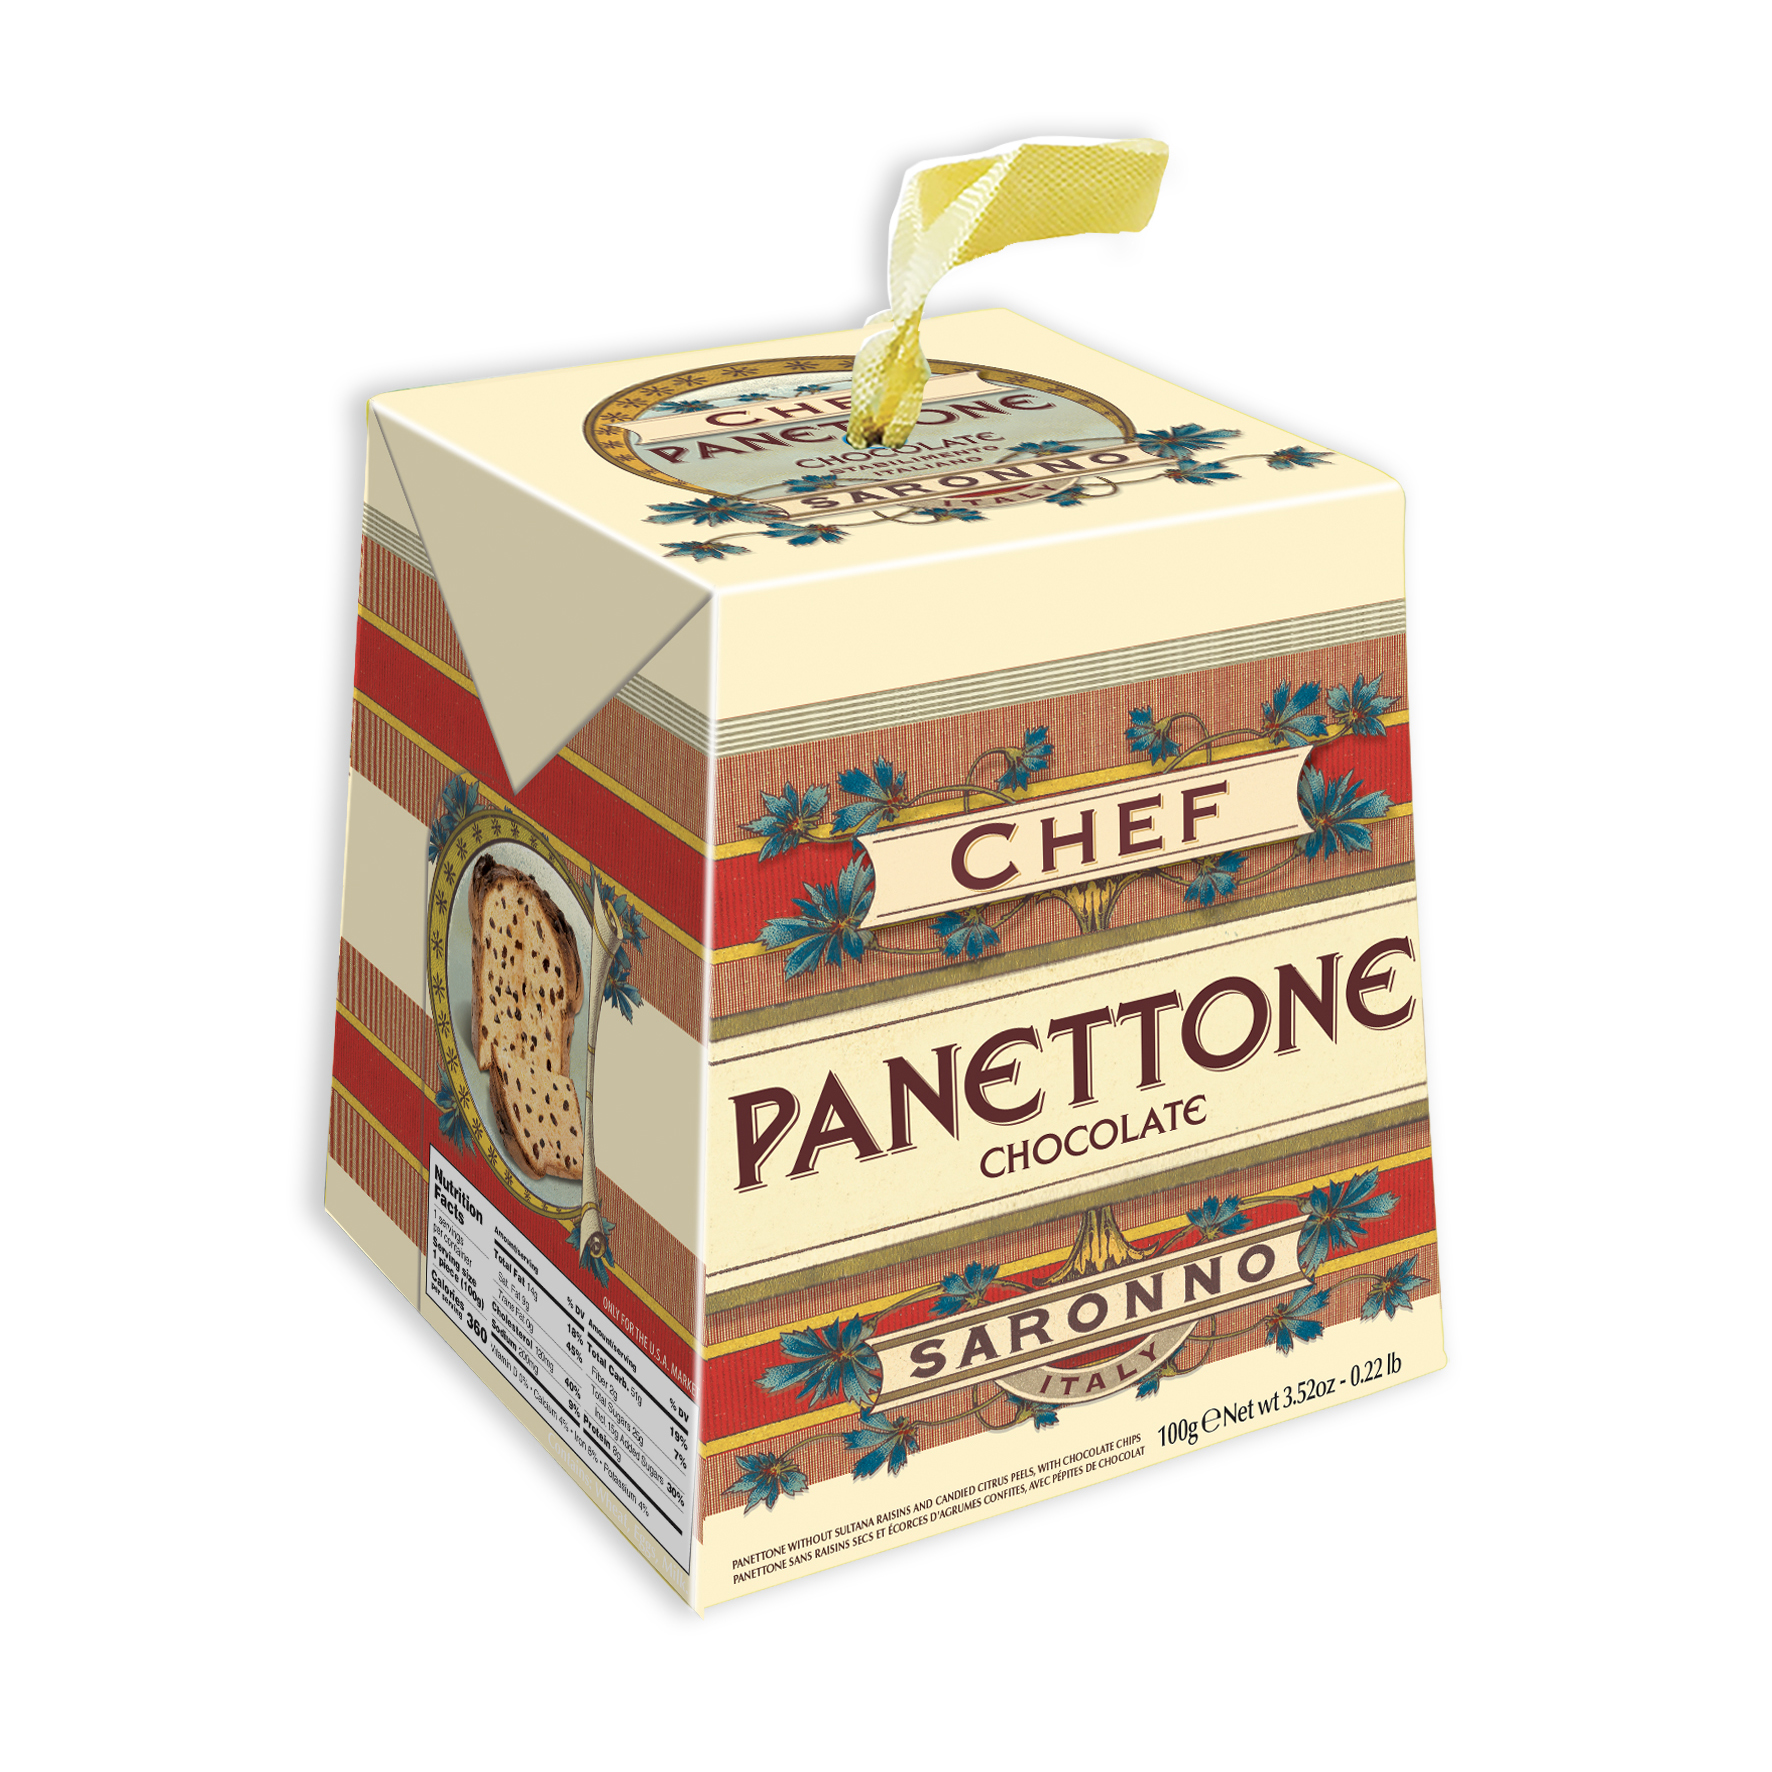 Panettone Chef specialty cake of Milan biscuits tasty snack/ dessert/Confectionary/ chocolate filling Bakery, Italy, Brand-Chef,Paolo Lazzaroni&Figli Spa